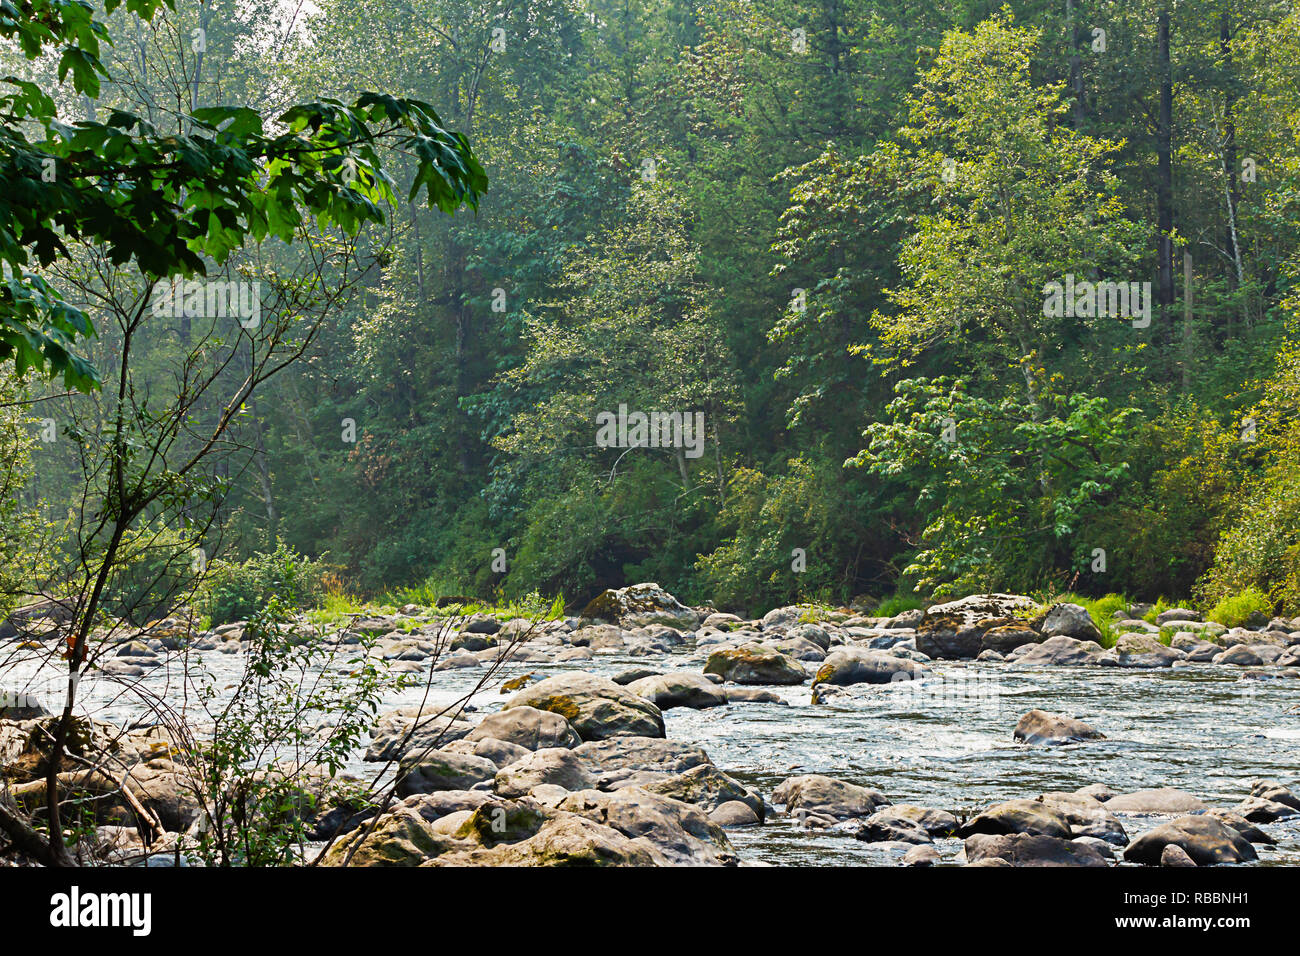 green river gorge in washington state with boulders and shallow pools in summer - Stock Image